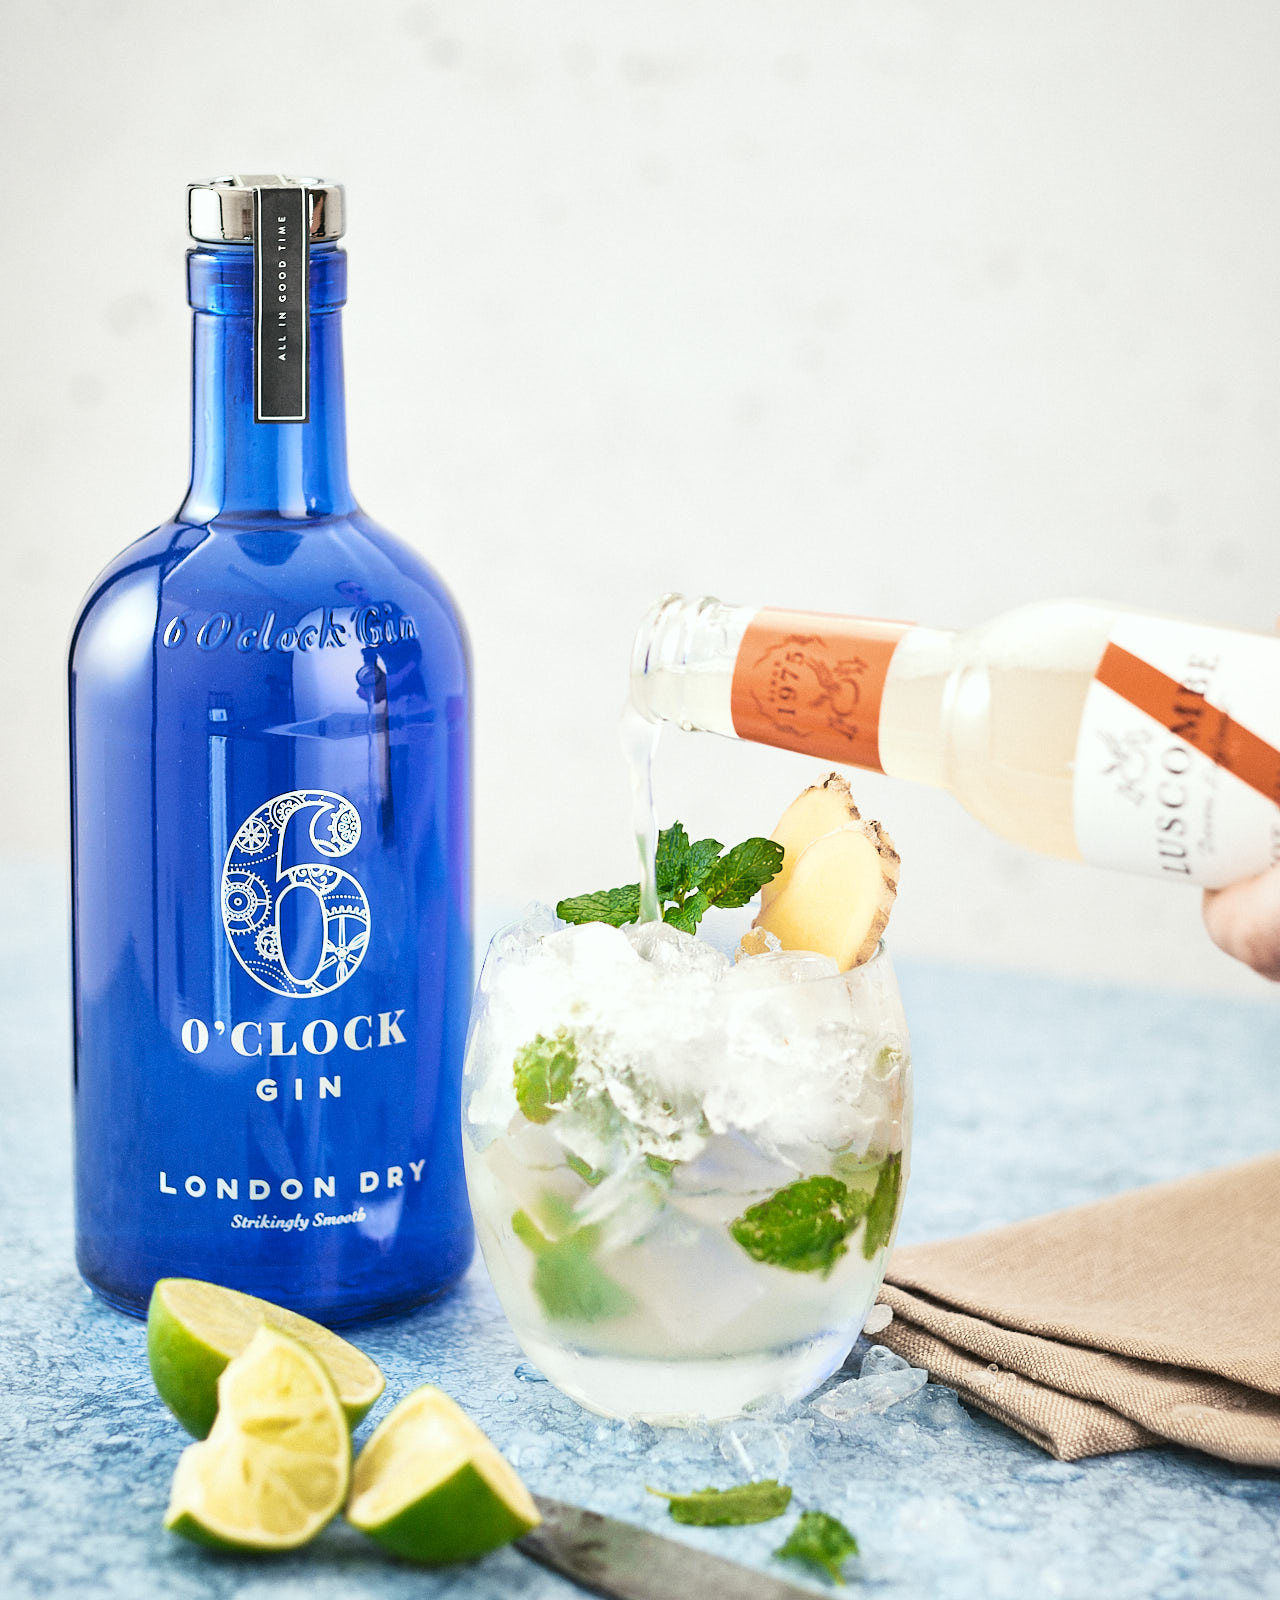 The Gin Gin Mule - A refreshing gin cocktail with lime, mint and ginger.